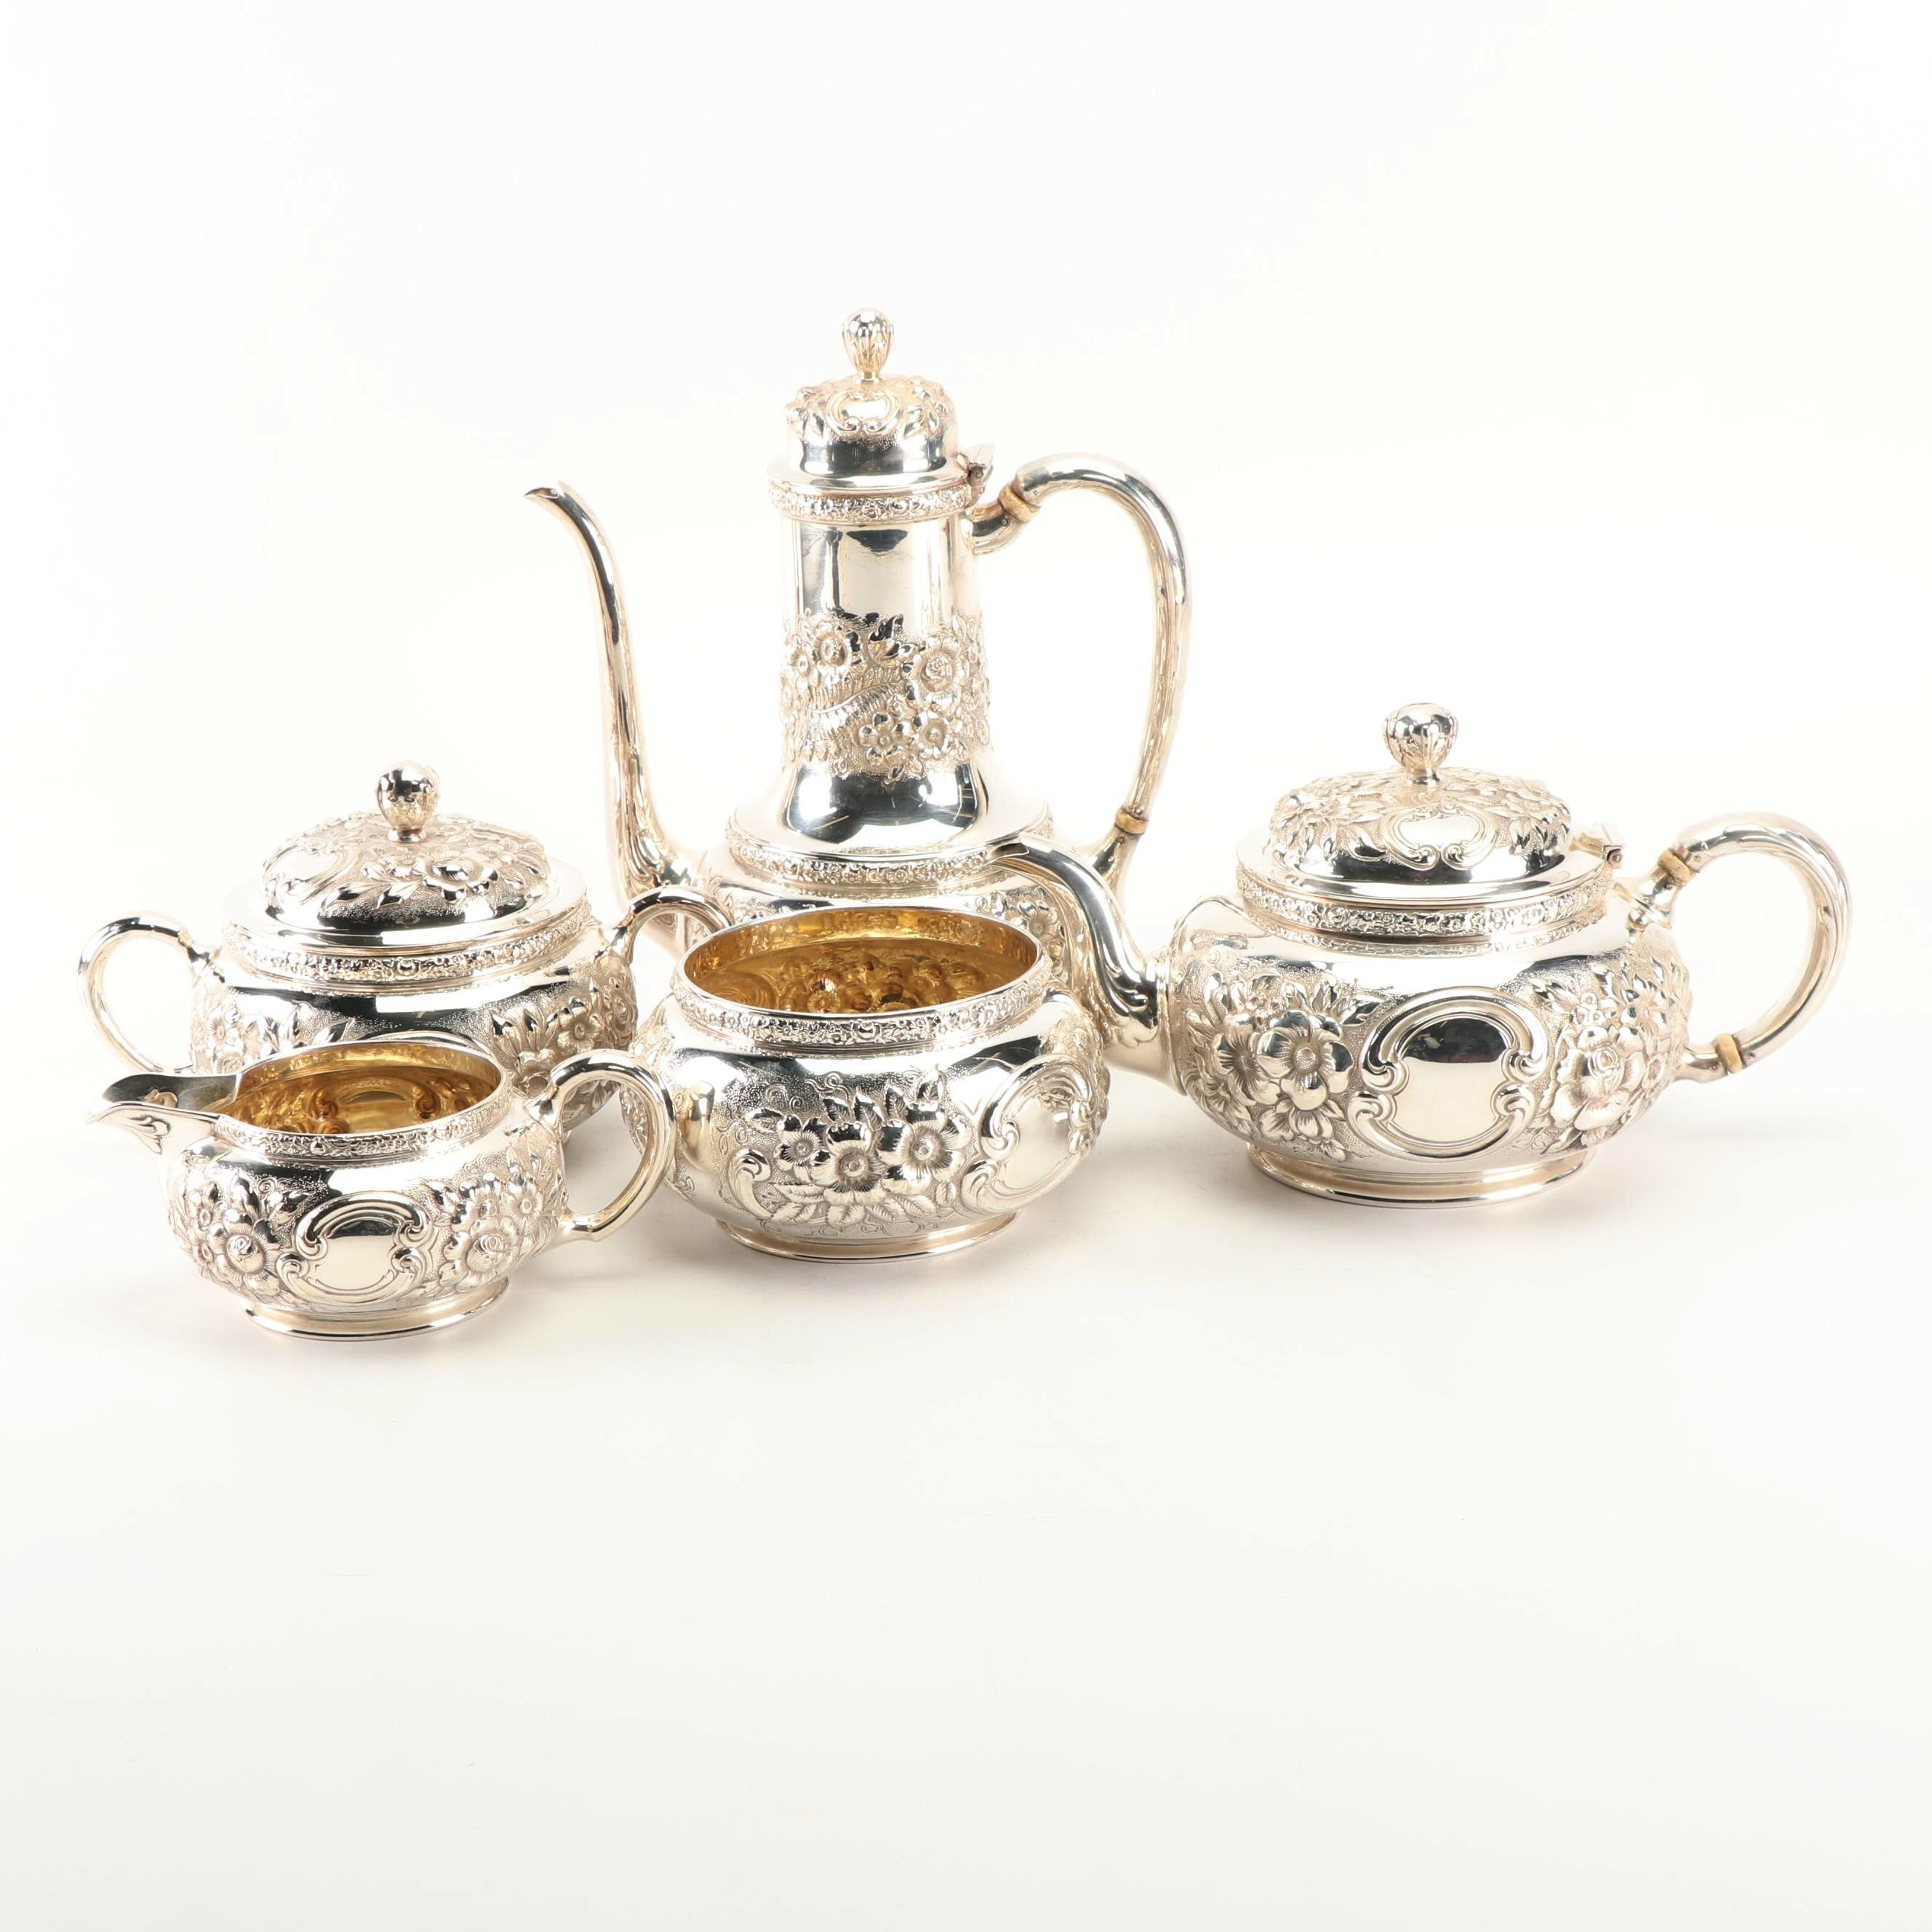 Tiffany & Co. Silver Plate Floral Repoussé Tea and Coffee Service Set